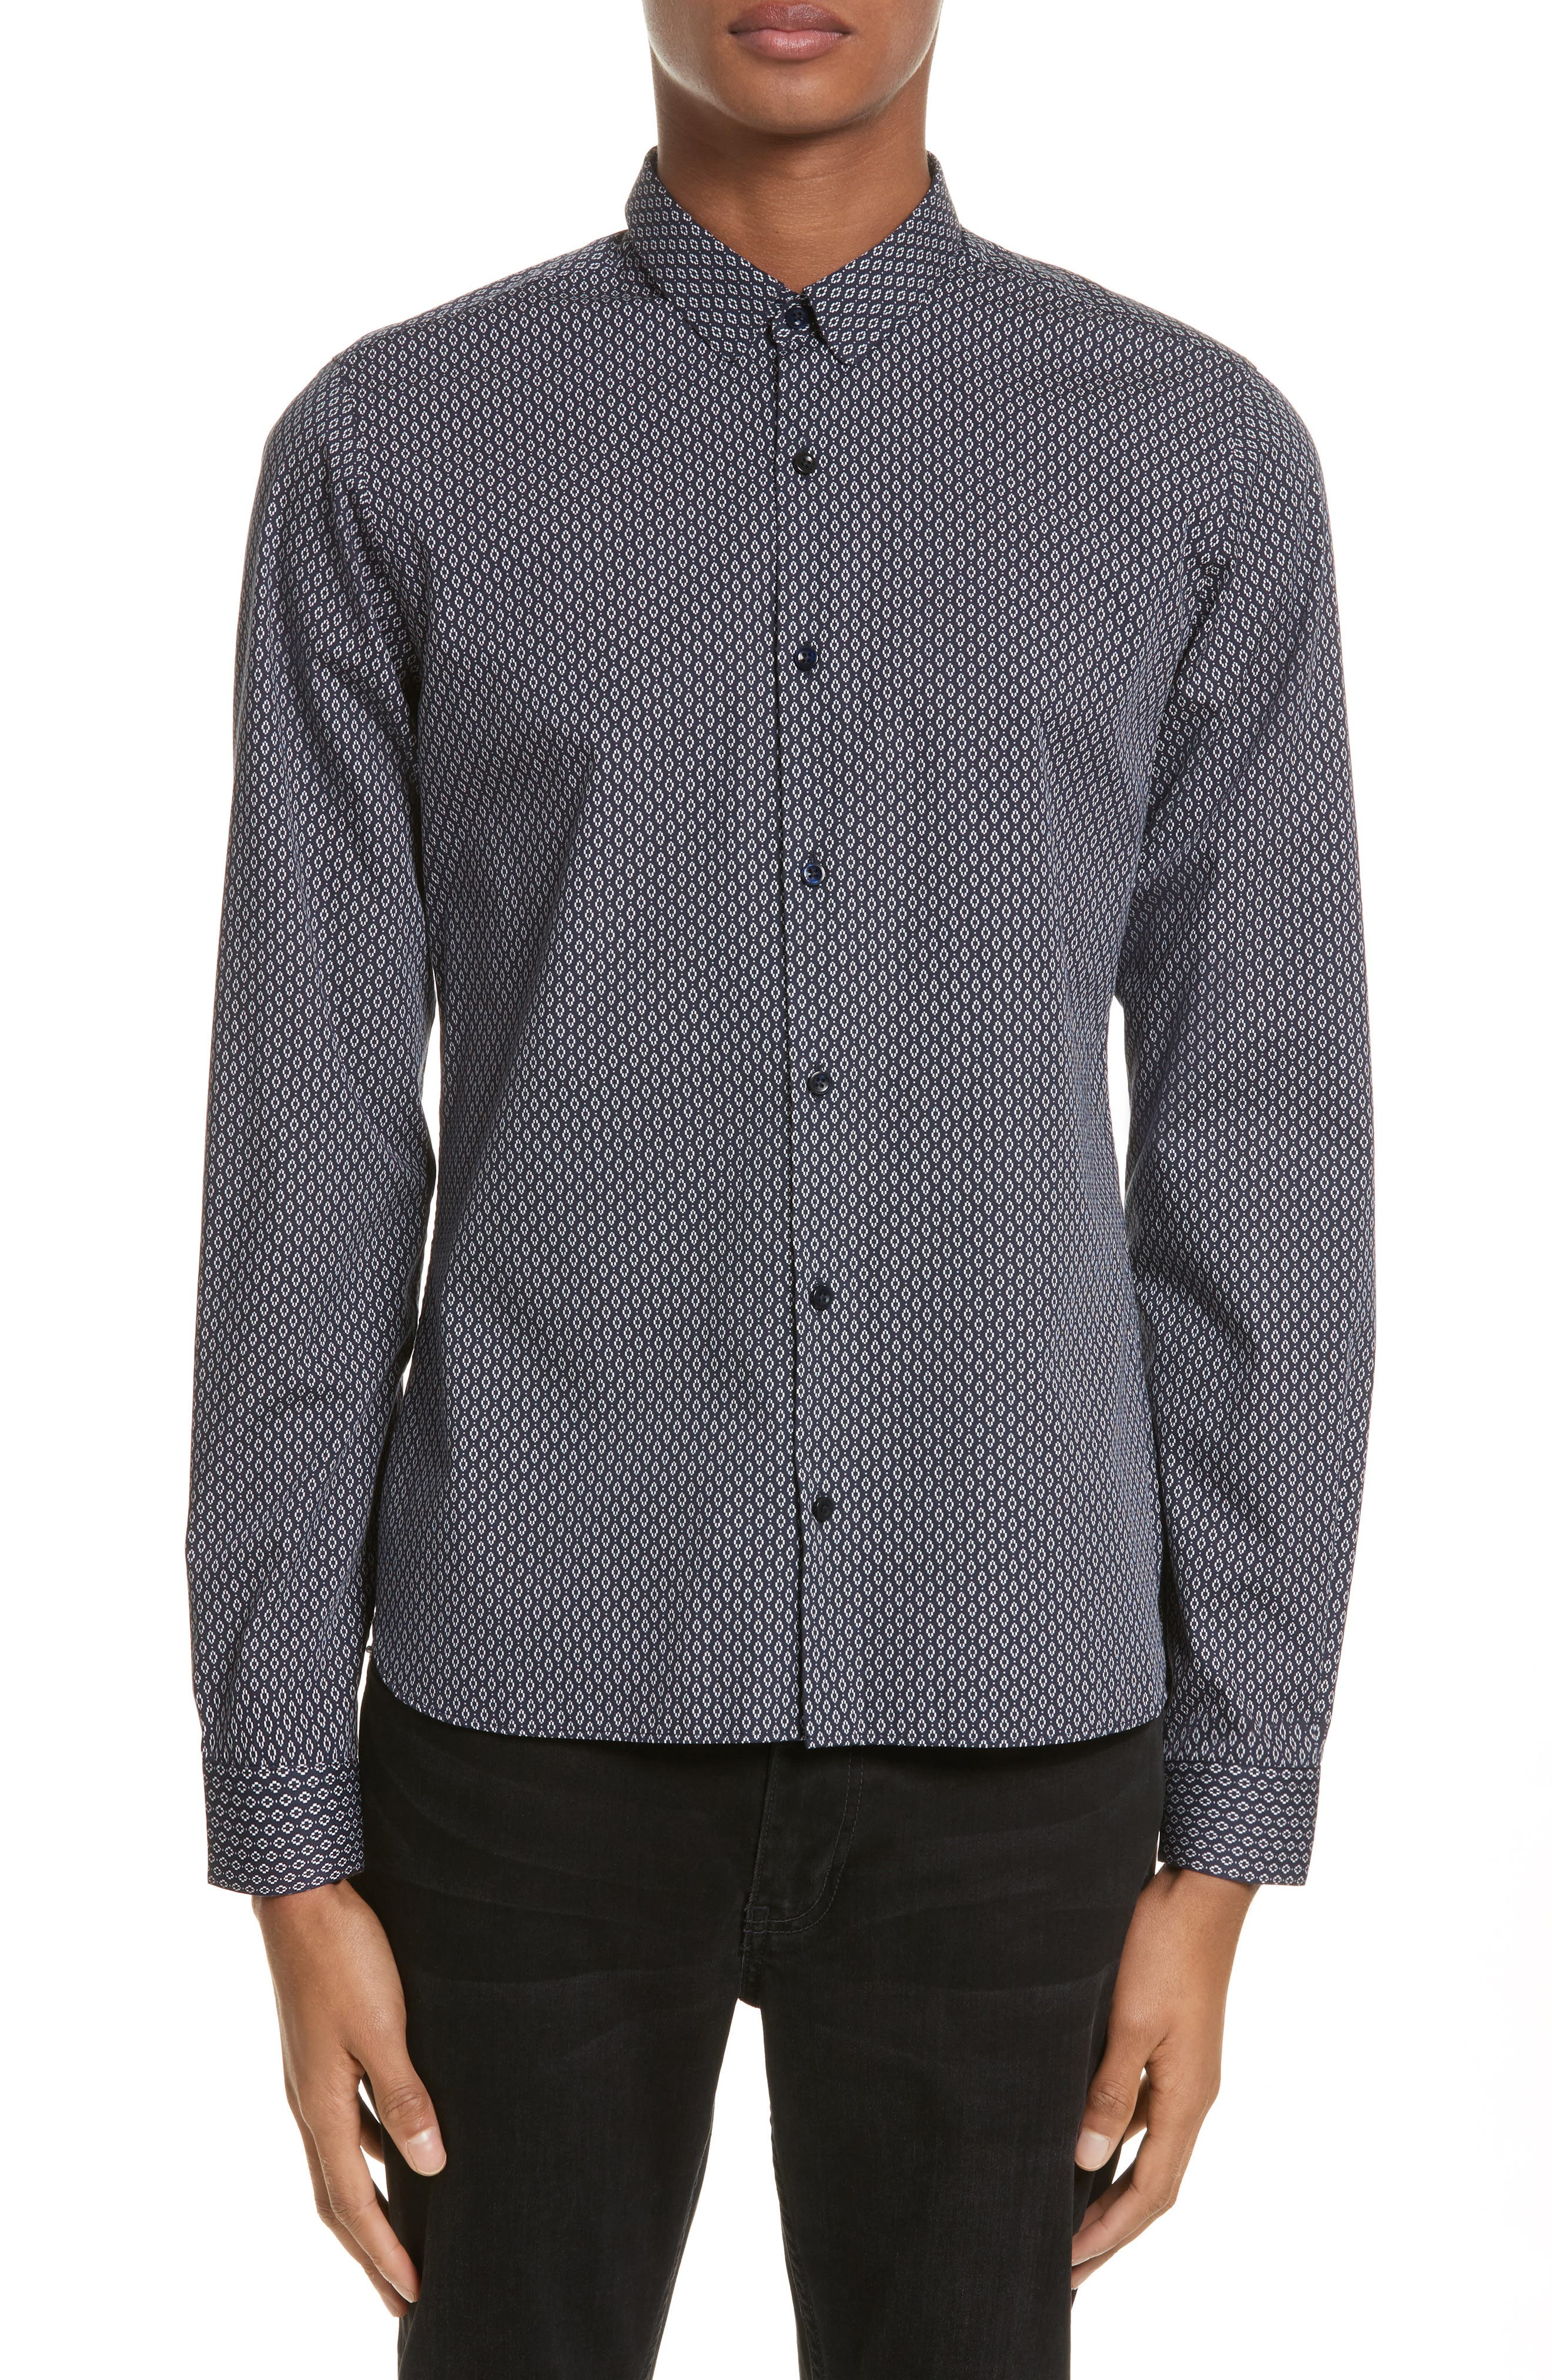 Main Image - The Kooples Diamond Print Shirt